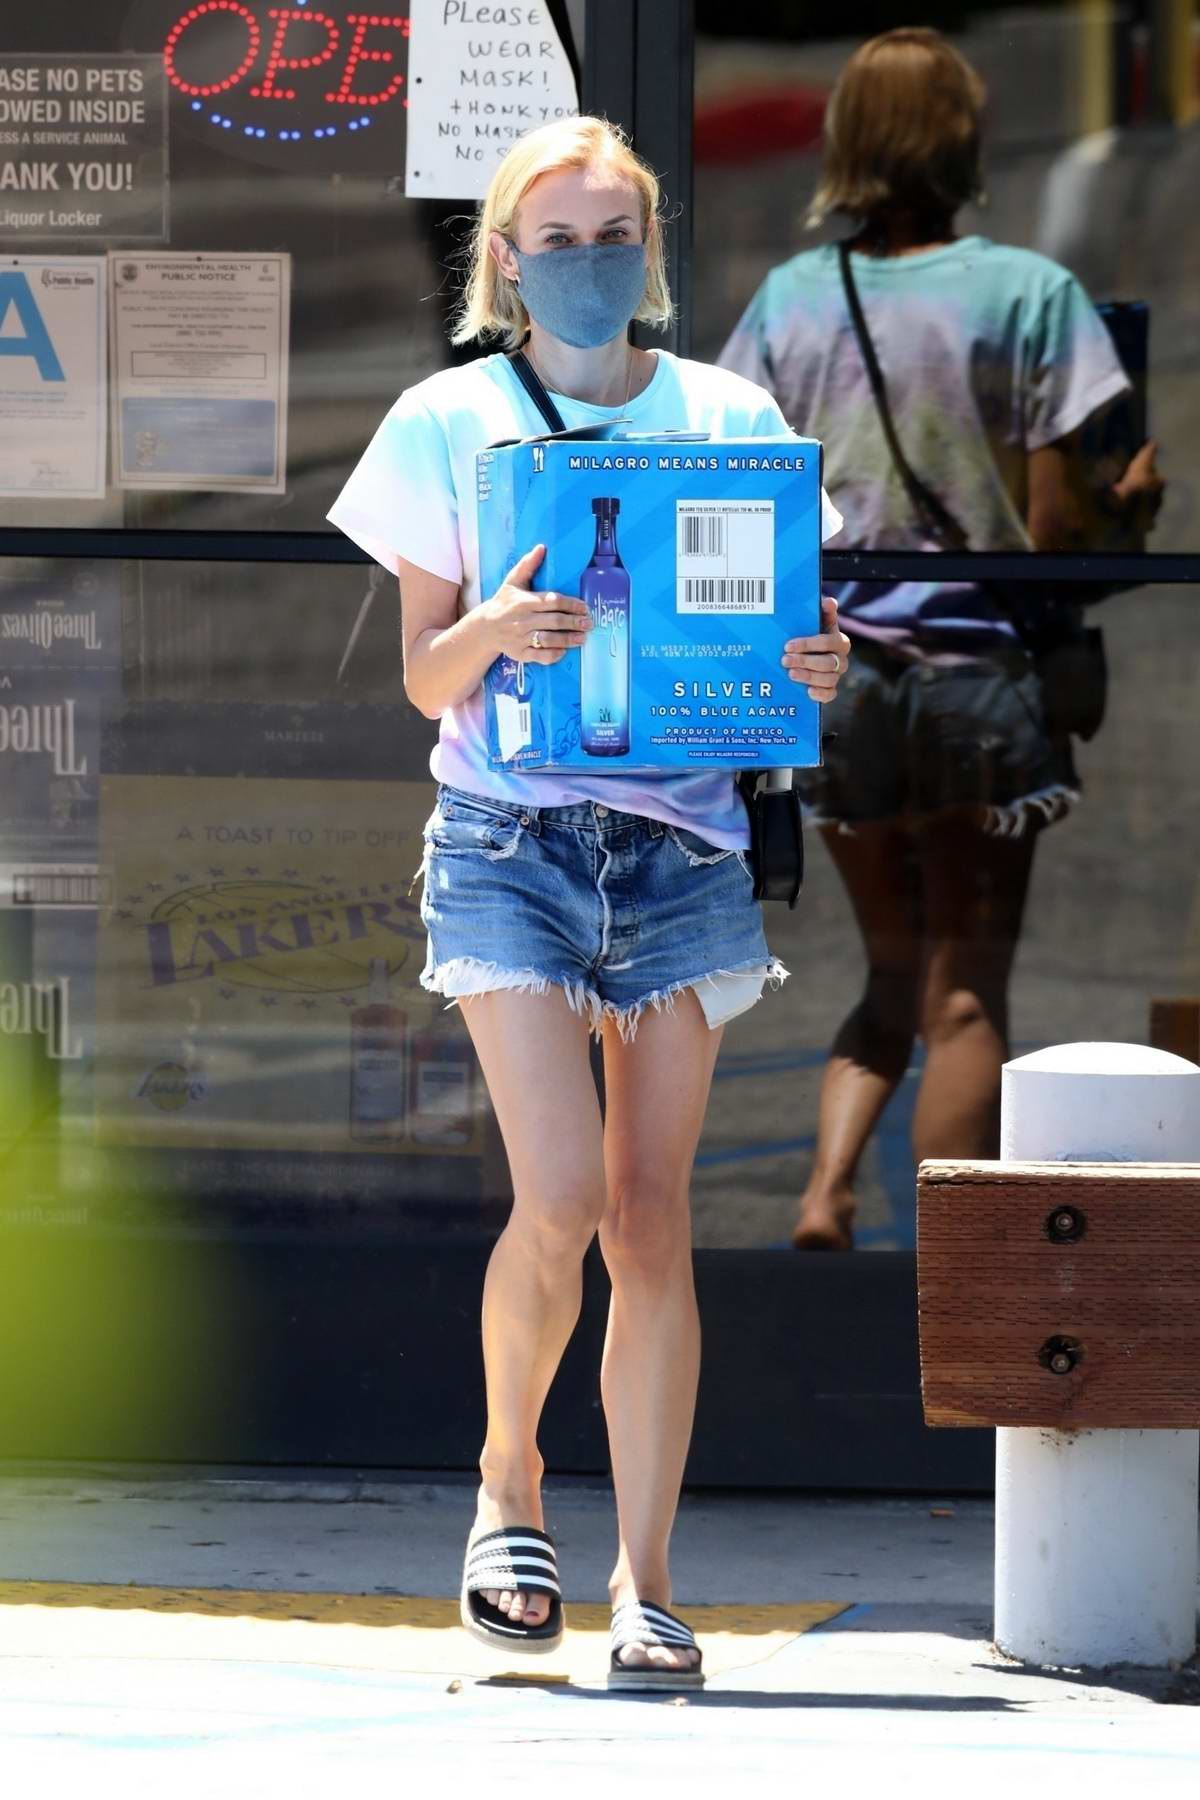 Diane Kruger stocks up on Blue Agave tequilana in Los Angeles